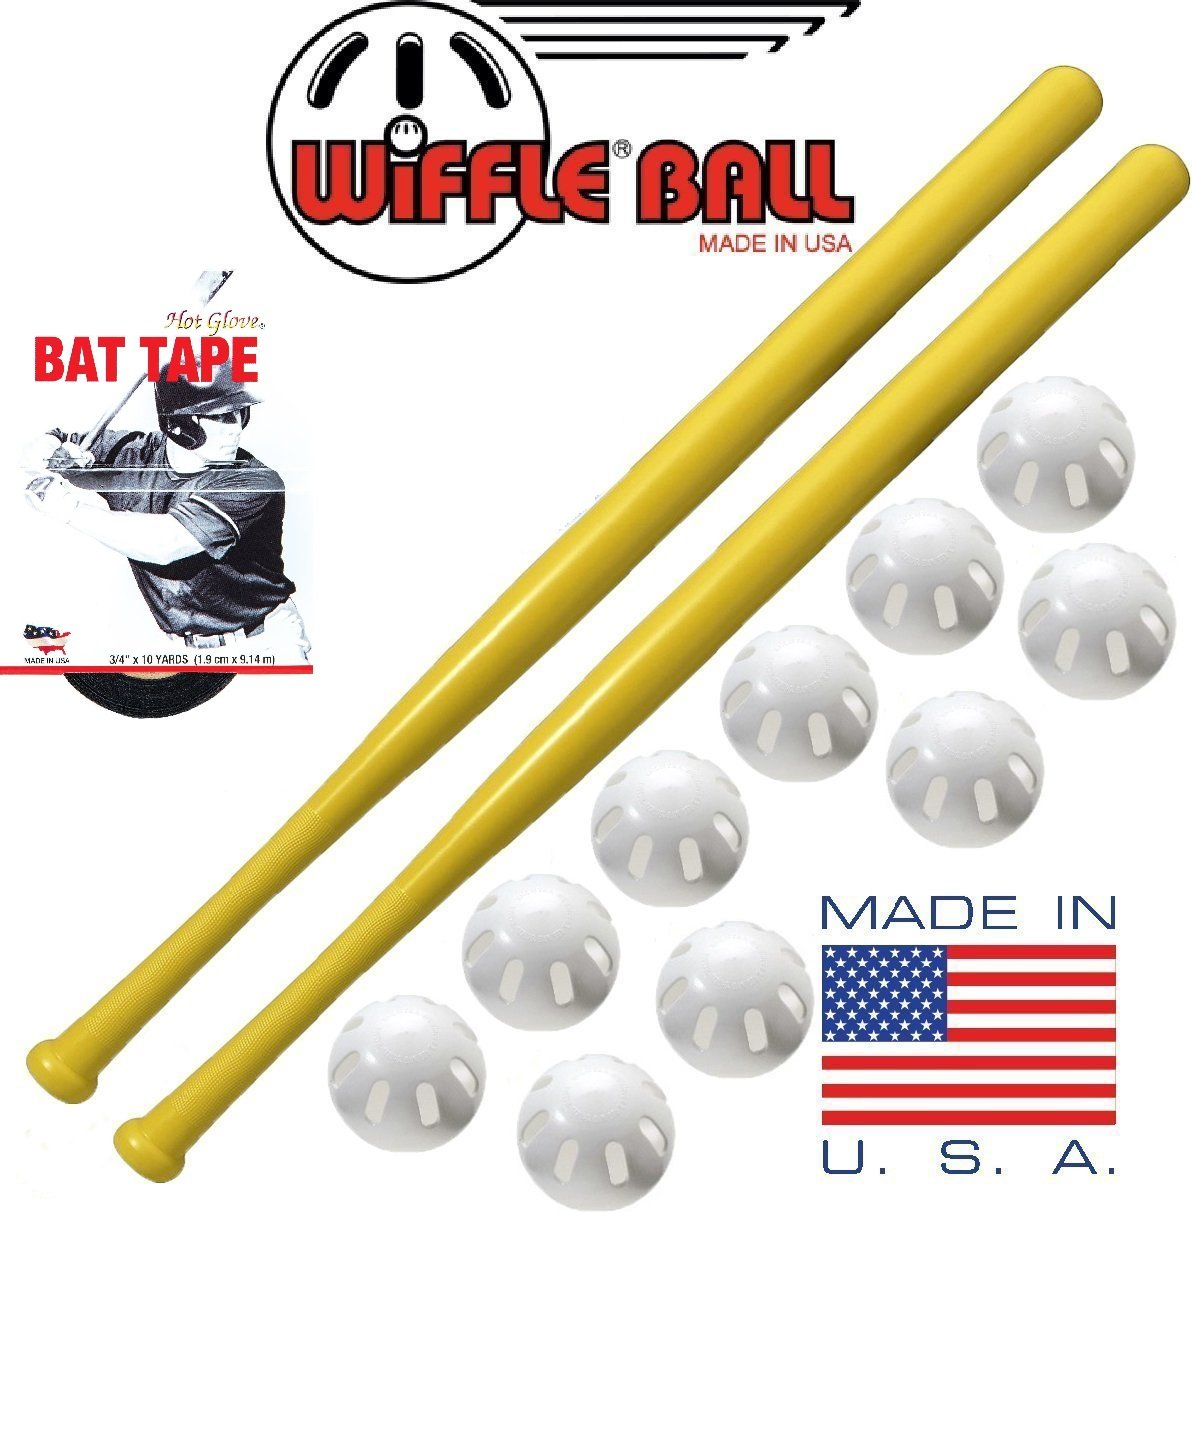 Wiffle Ball and Bat Combo Set, 10 Balls Baseballs, 2 Bats, 1 Roll Bat Tape by WIFFLE